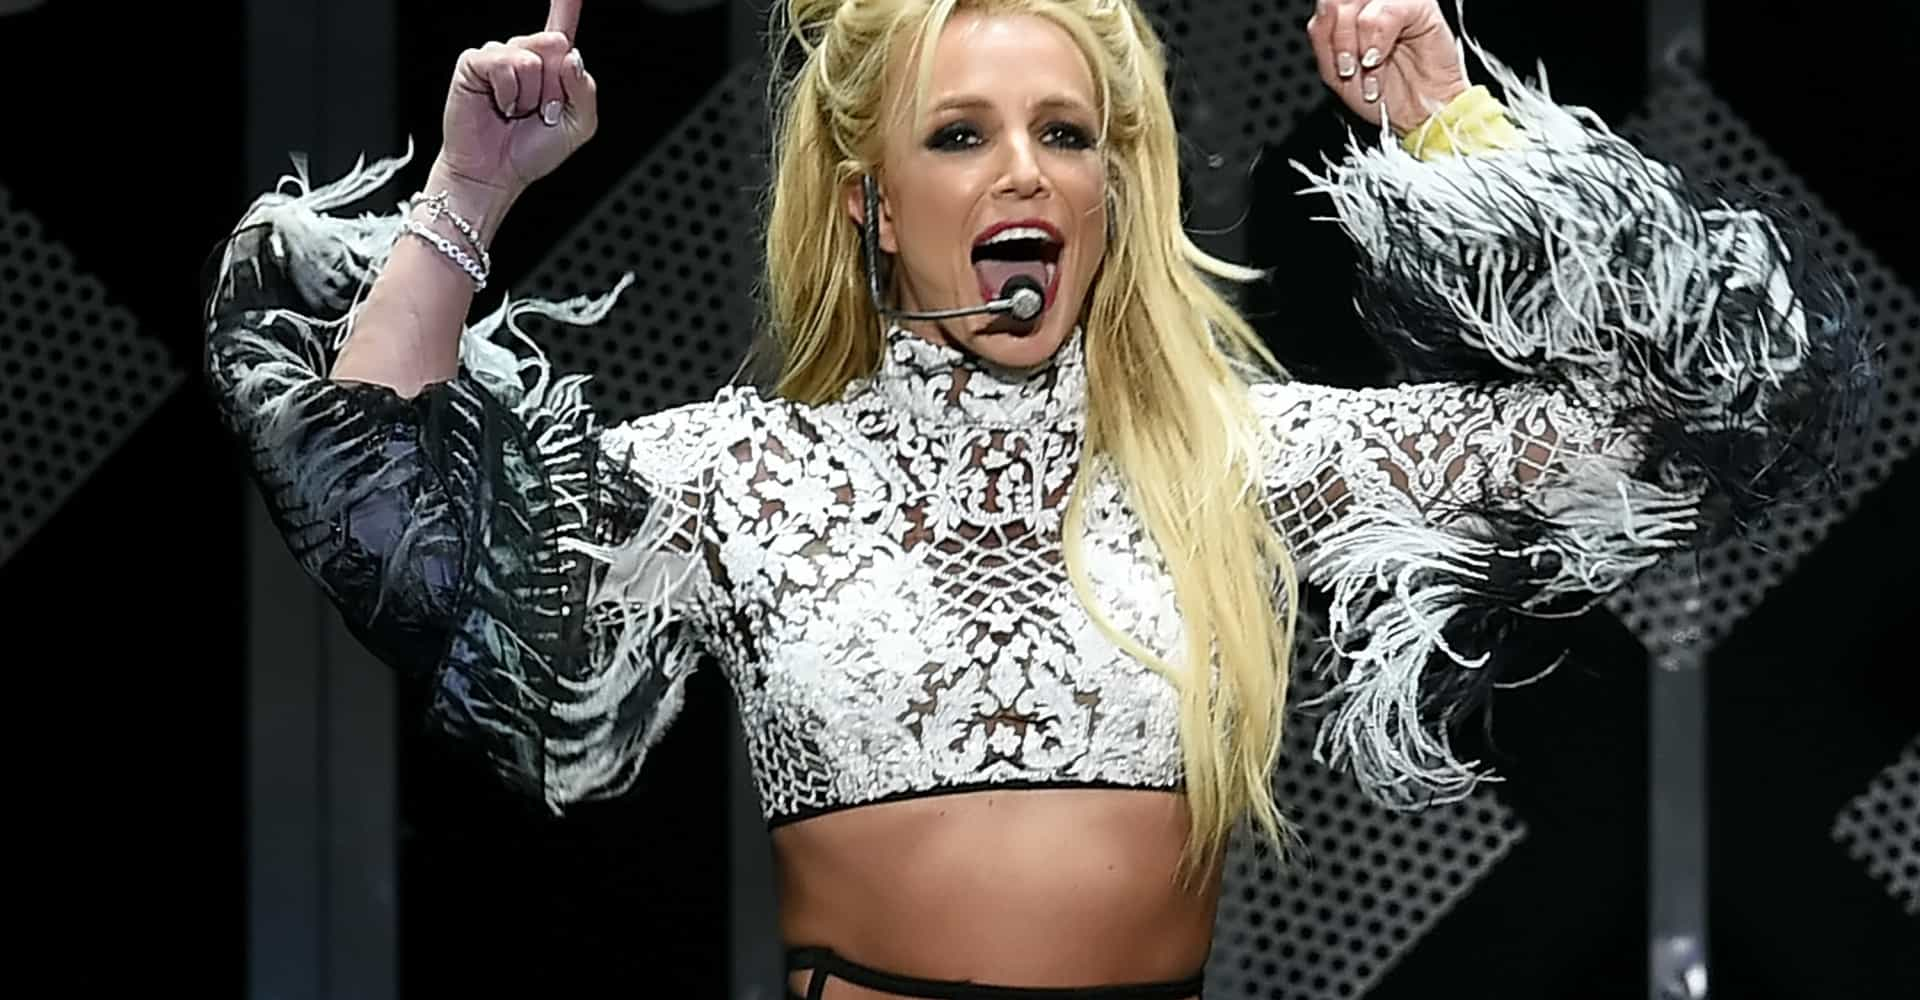 Britney Spears performs with a cringe-worthy British accent at London concert